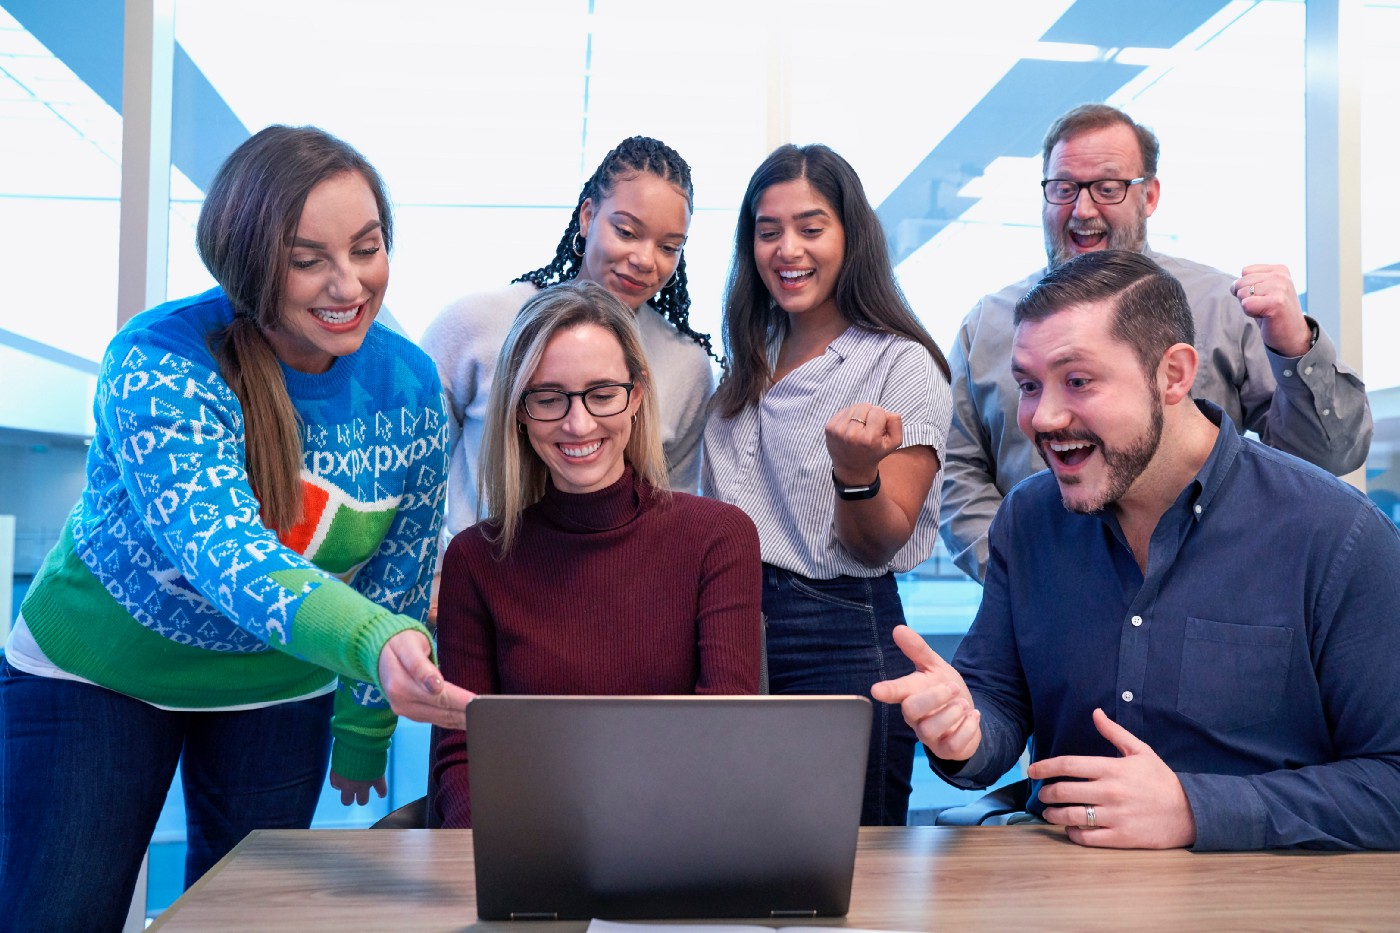 A group of office people staring at a laptop cheerfully